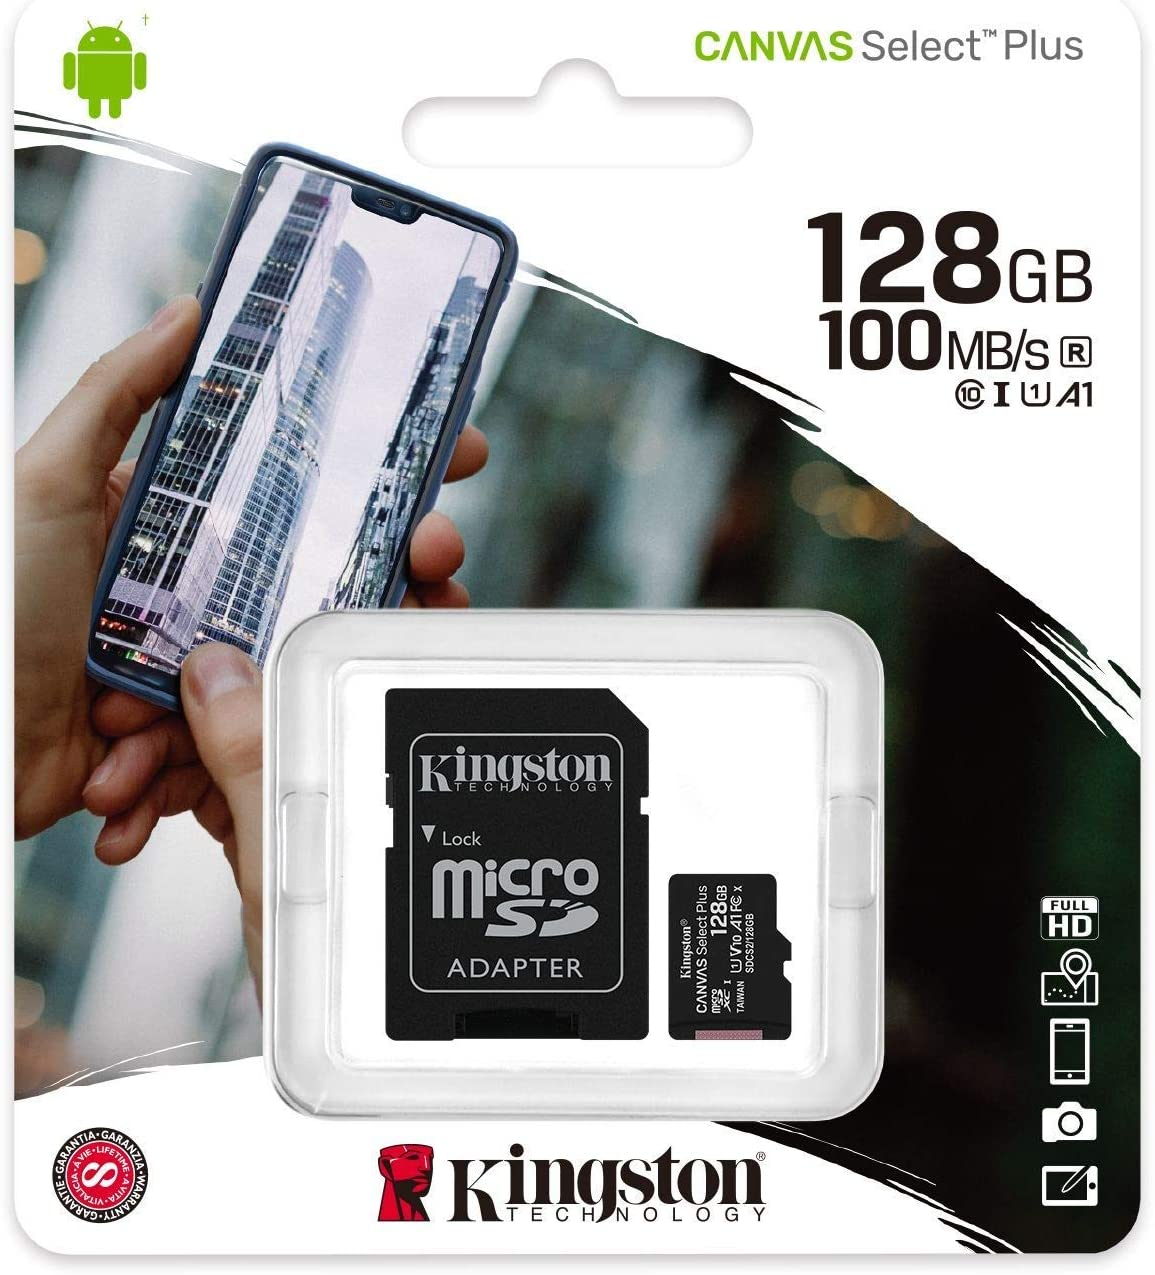 100MBs Works with Kingston Kingston 128GB Samsung SM-A415F//DS MicroSDXC Canvas Select Plus Card Verified by SanFlash.